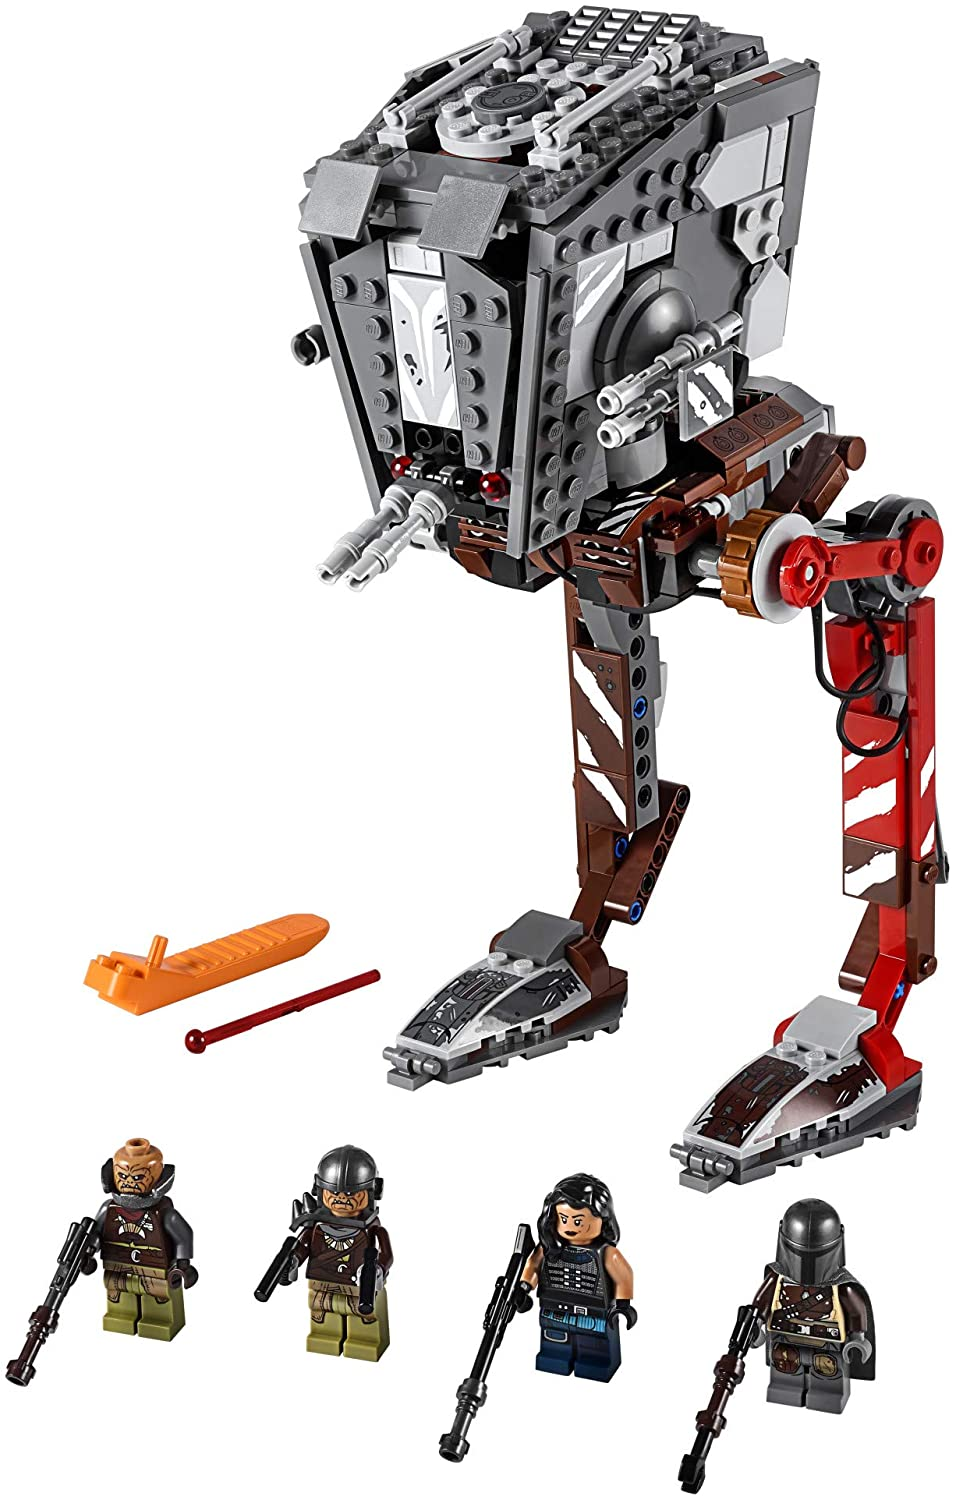 TM AT-ST Raider Lego Set 3